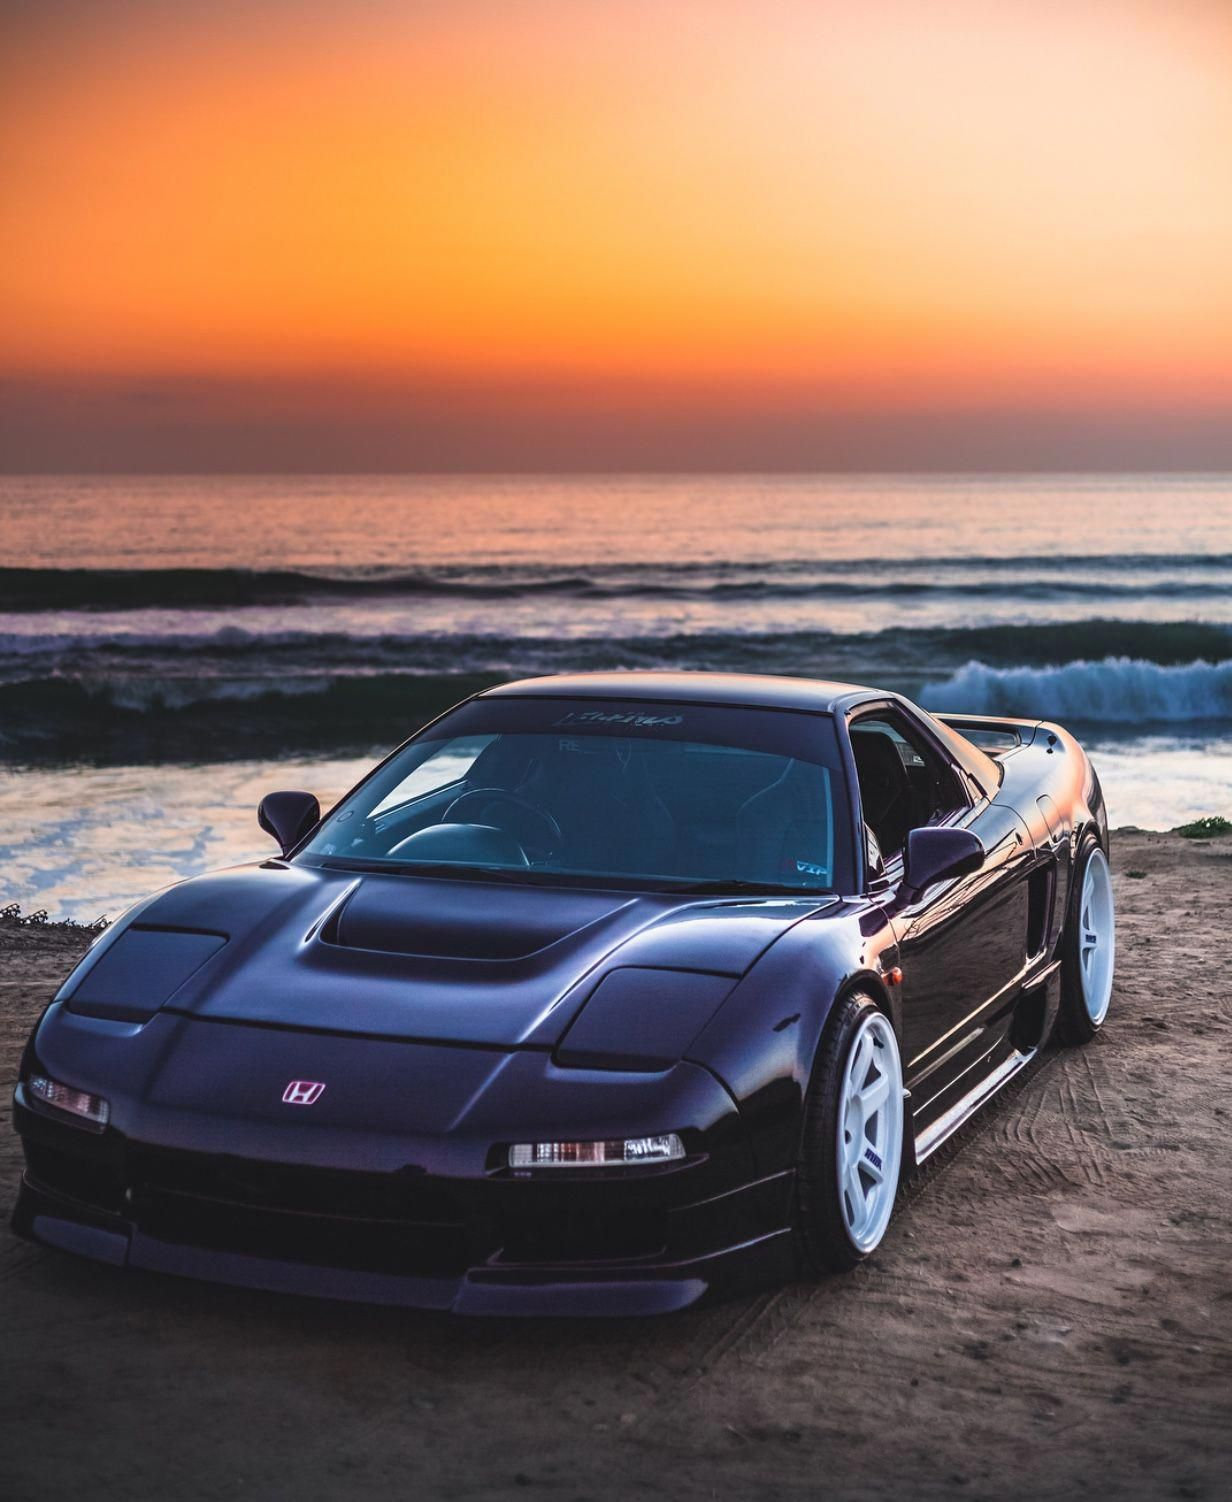 Pin By Tyler Utz On ACURA NSX VTEC In 2020